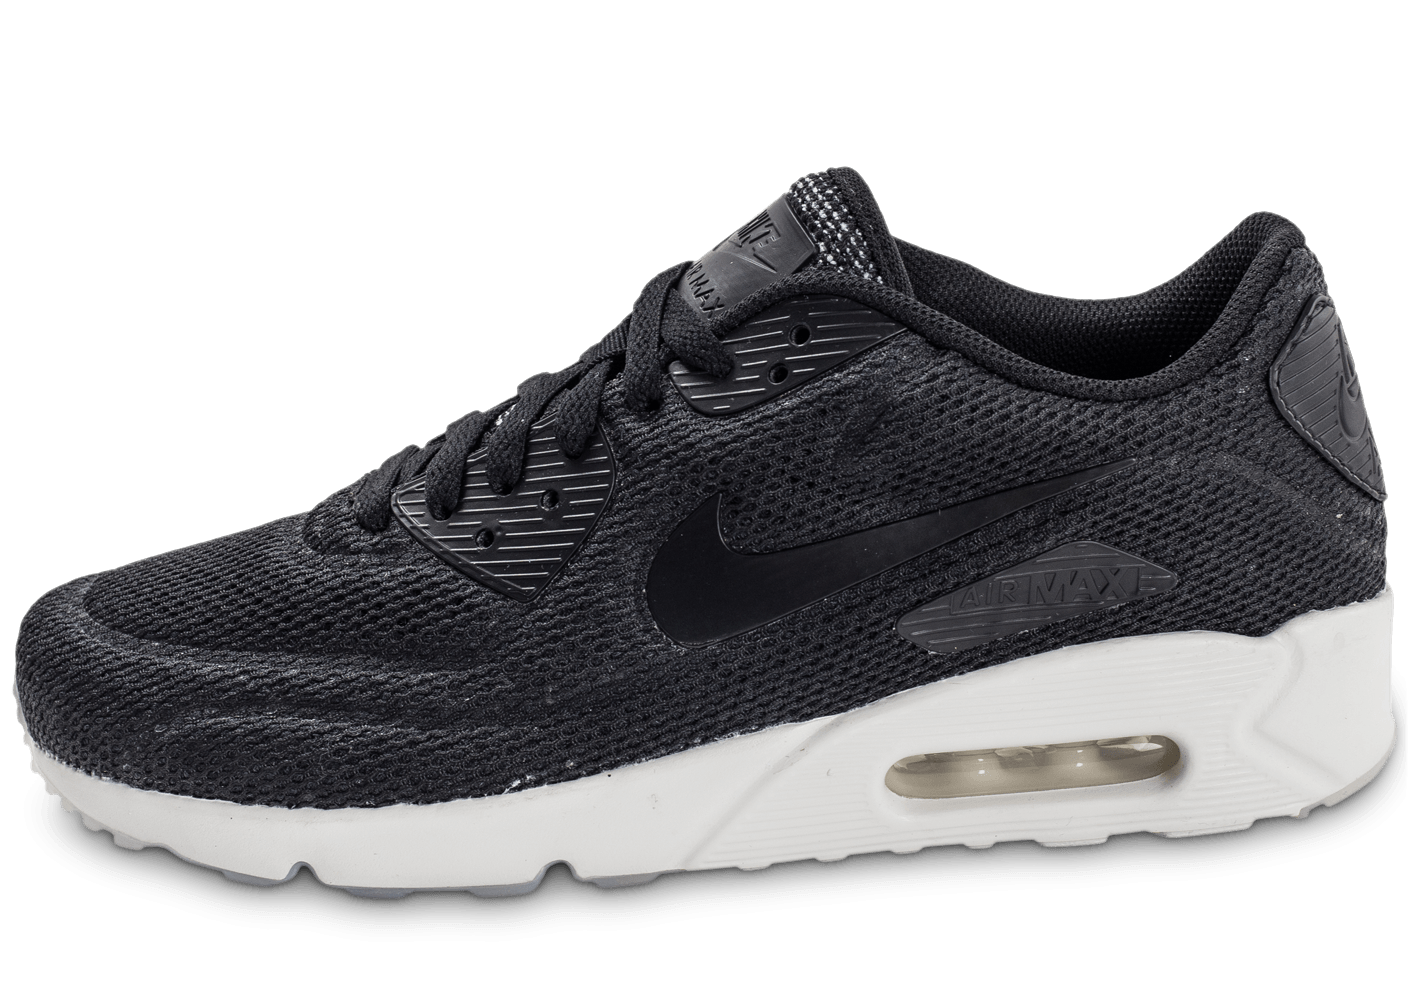 brand new bc04b 8db59 Nike Air Max 90 Ultra 2.0 Breeze noire - Chaussures Baskets homme -  Chausport